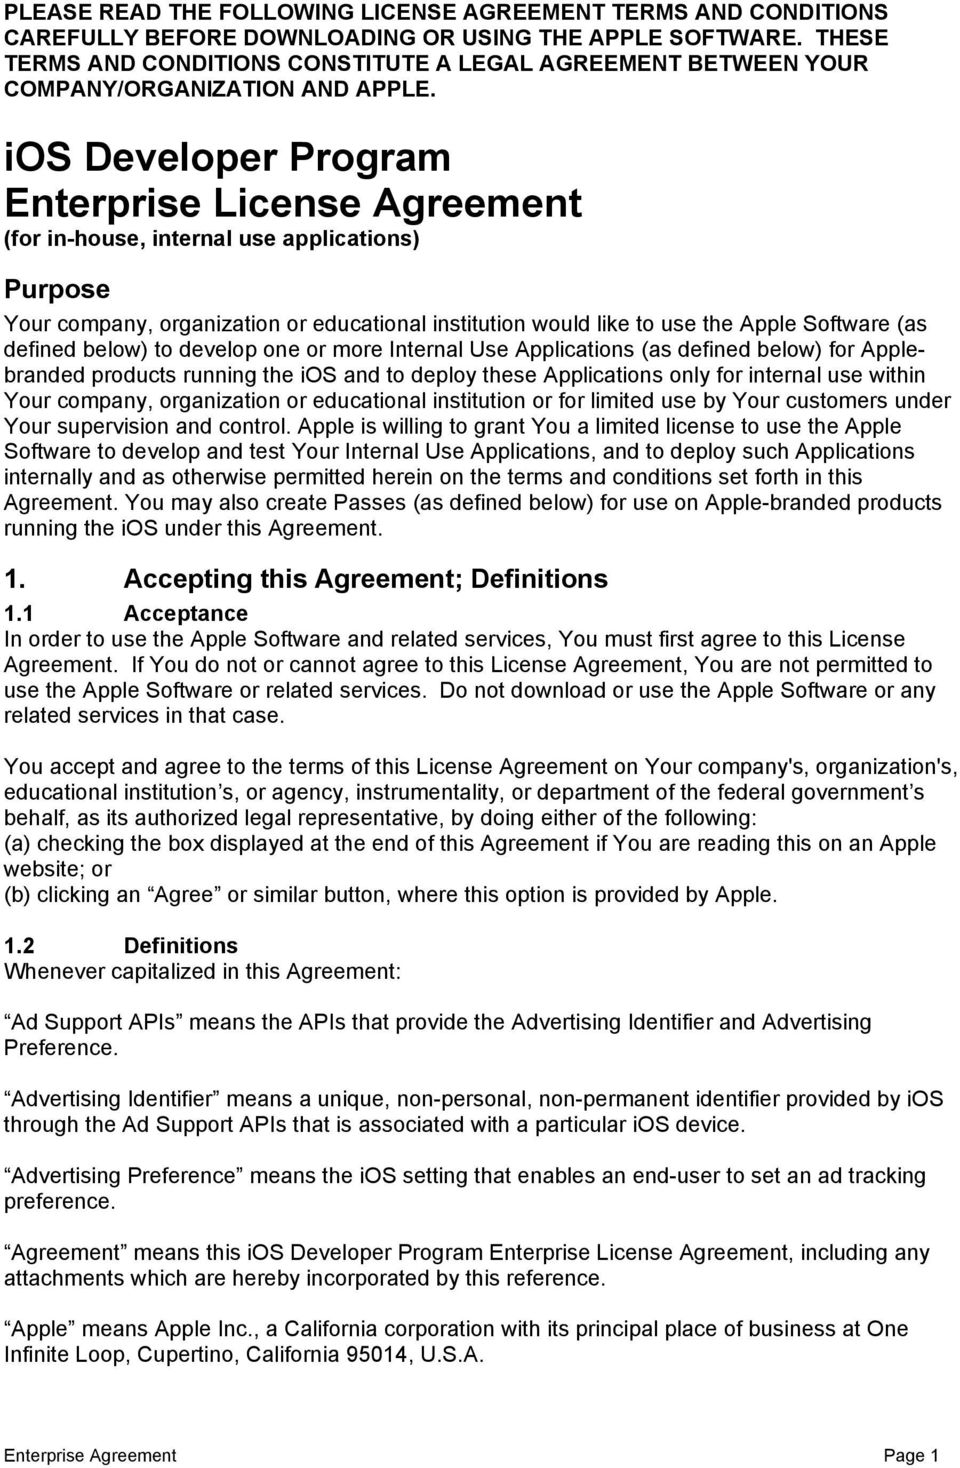 ios Developer Program Enterprise License Agreement (for in-house, internal use applications) Purpose Your company, organization or educational institution would like to use the Apple Software (as